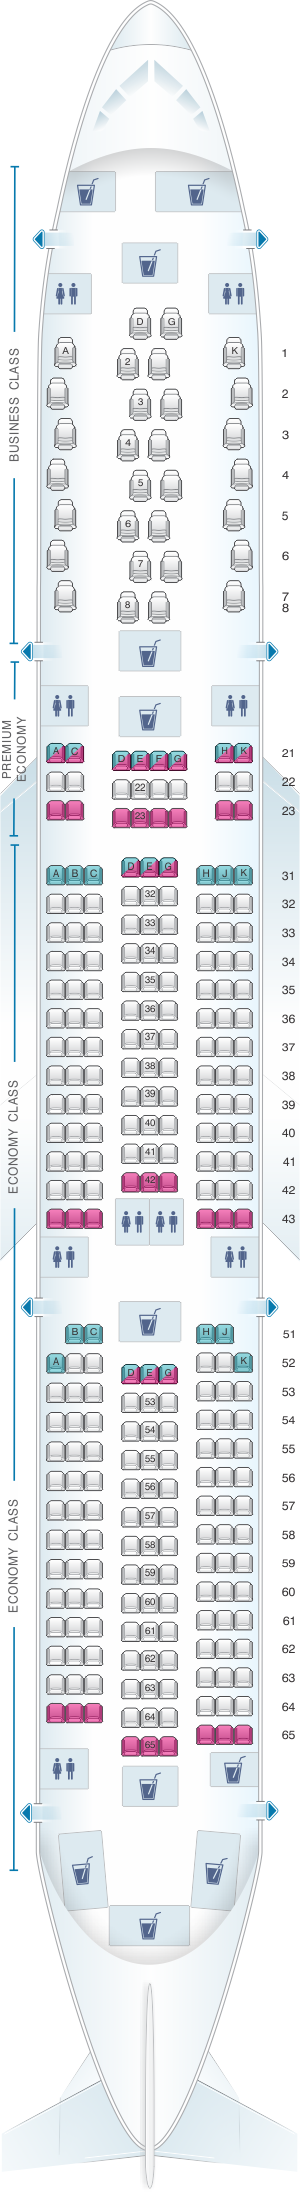 Seat map for Philippine Airlines Airbus A350 900